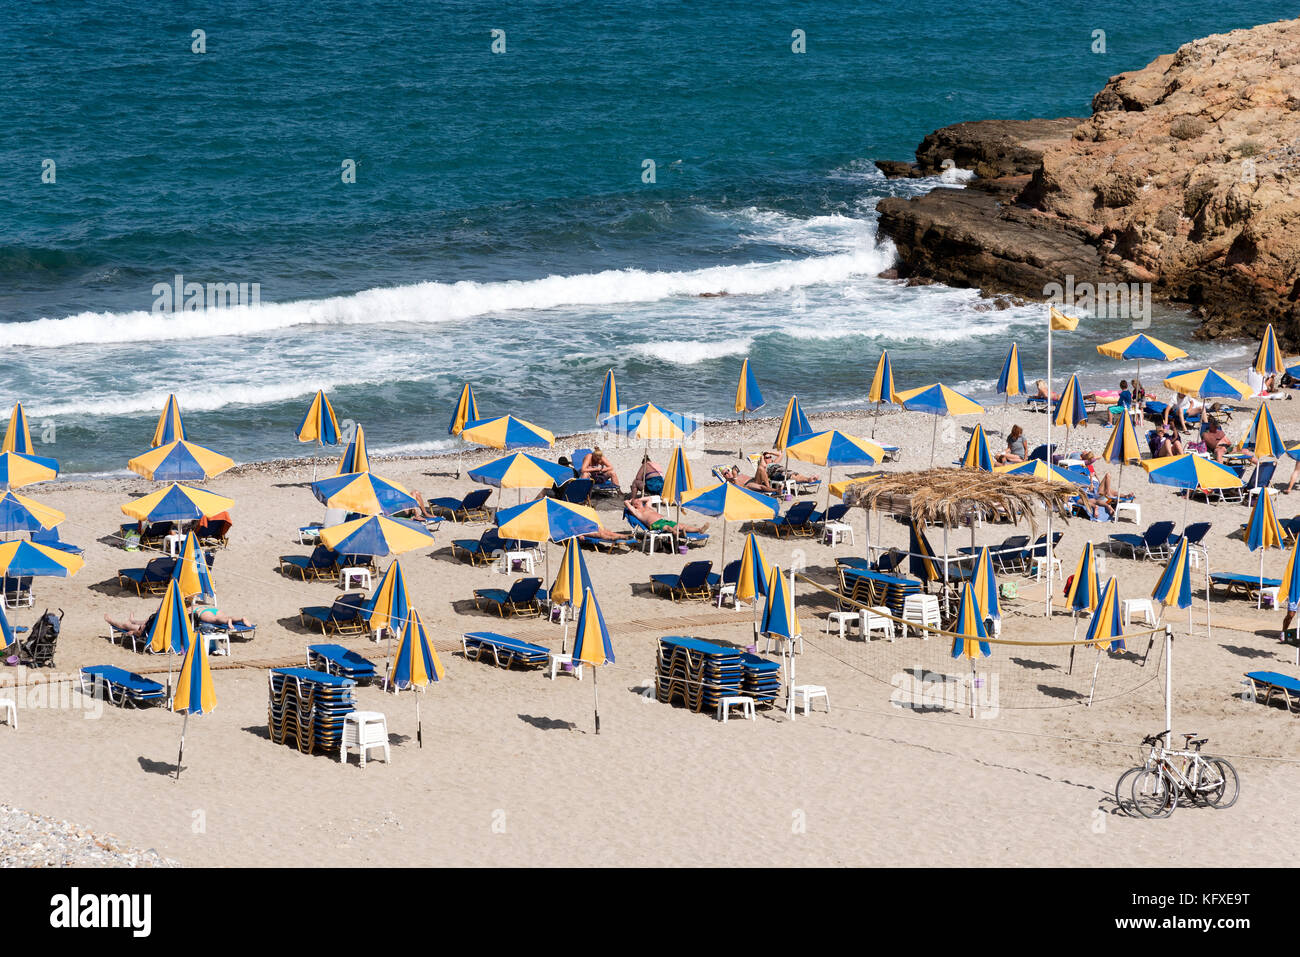 Seaside resort of Sisi close to Malia, Crete, Greece Stock Photo